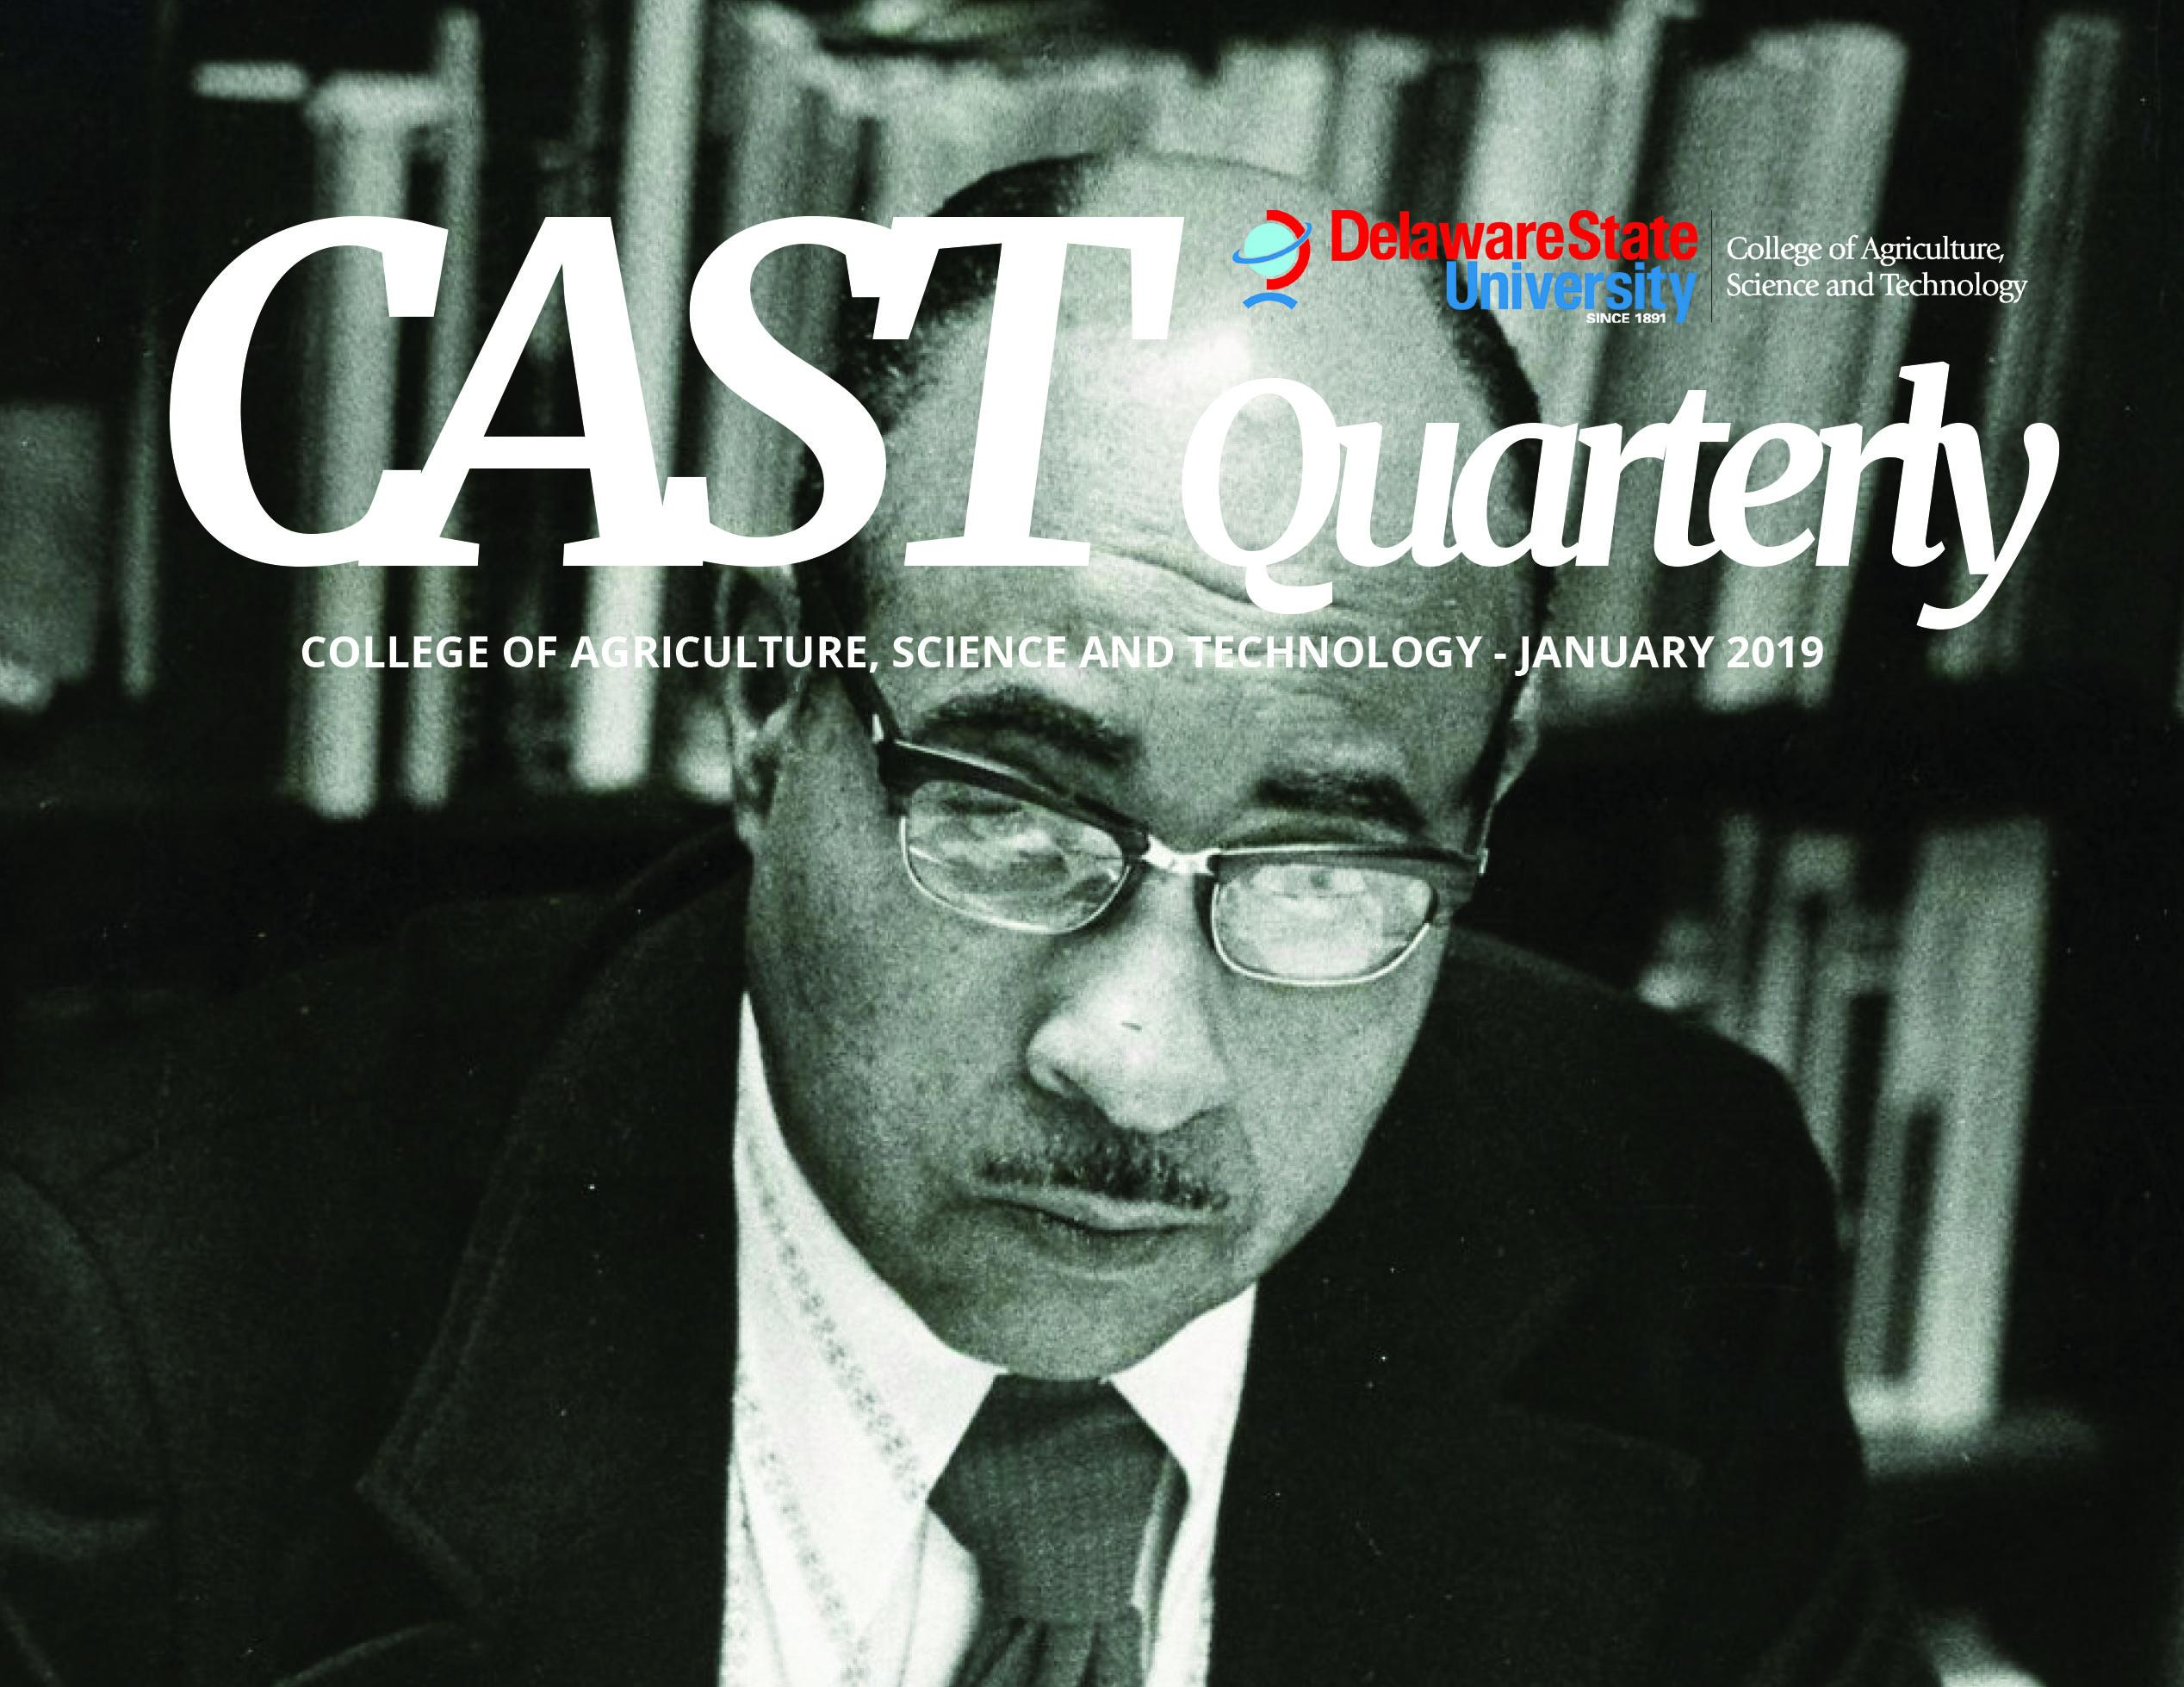 CAST QUARTERLY MAGAZINE_1